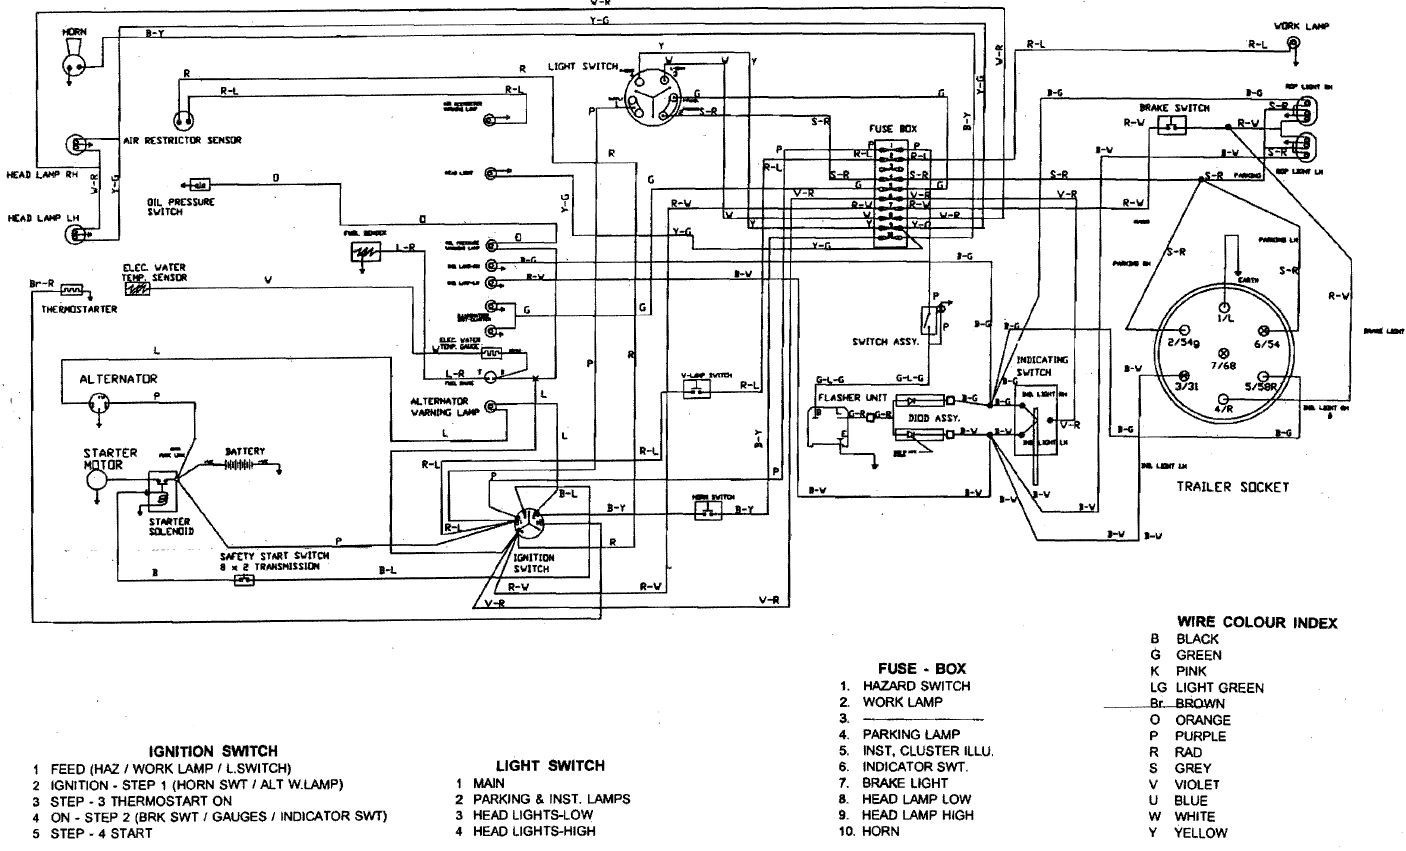 Rtv 1100 Wiring Diagram Electrical Diagrams Gl6500s Kubota Fuse Box Trusted Oil Filter Tractor